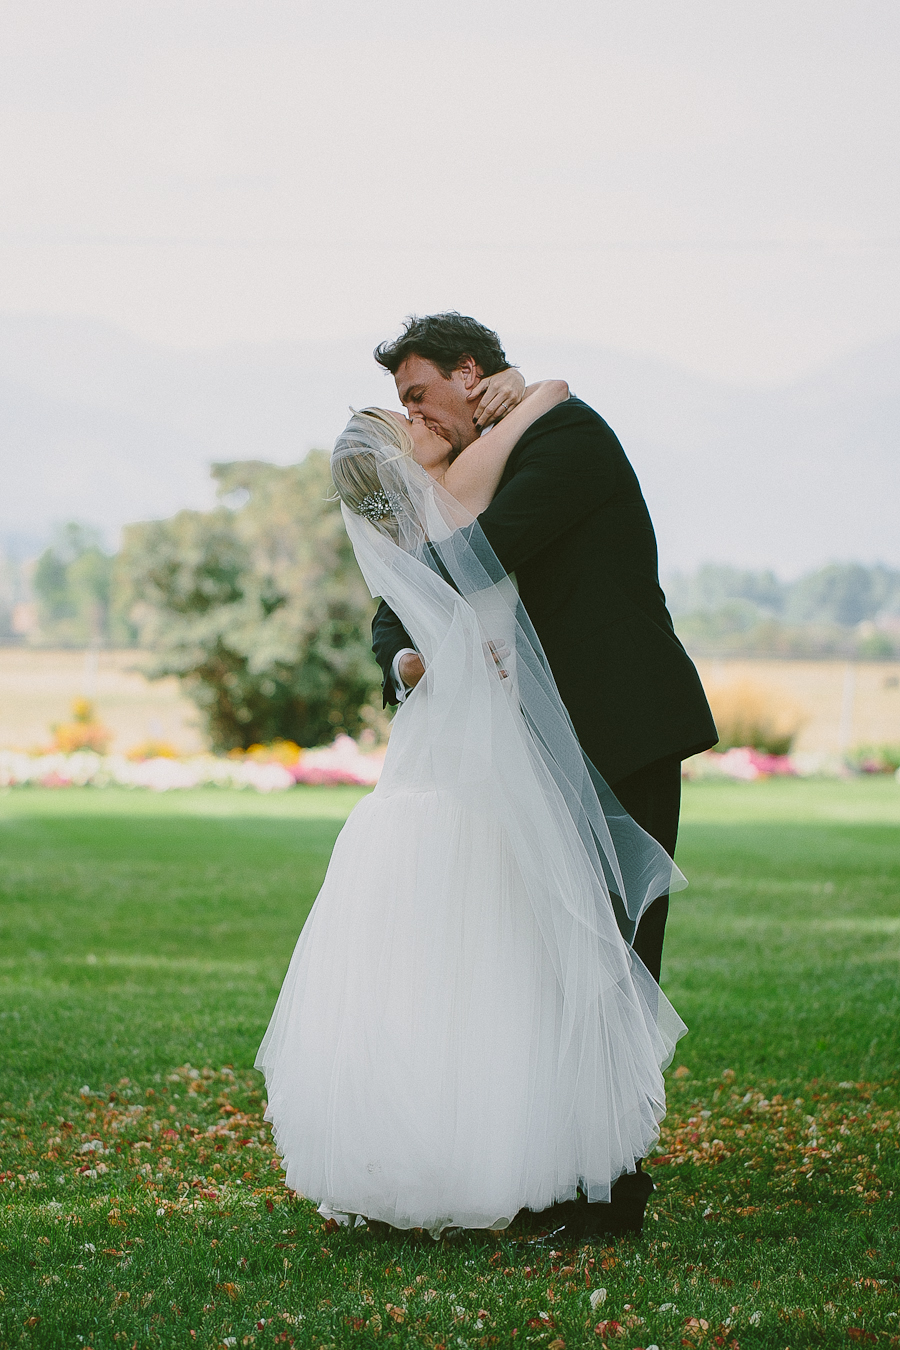 Our first kiss as husband and wife. Fritz and Melissa 2013